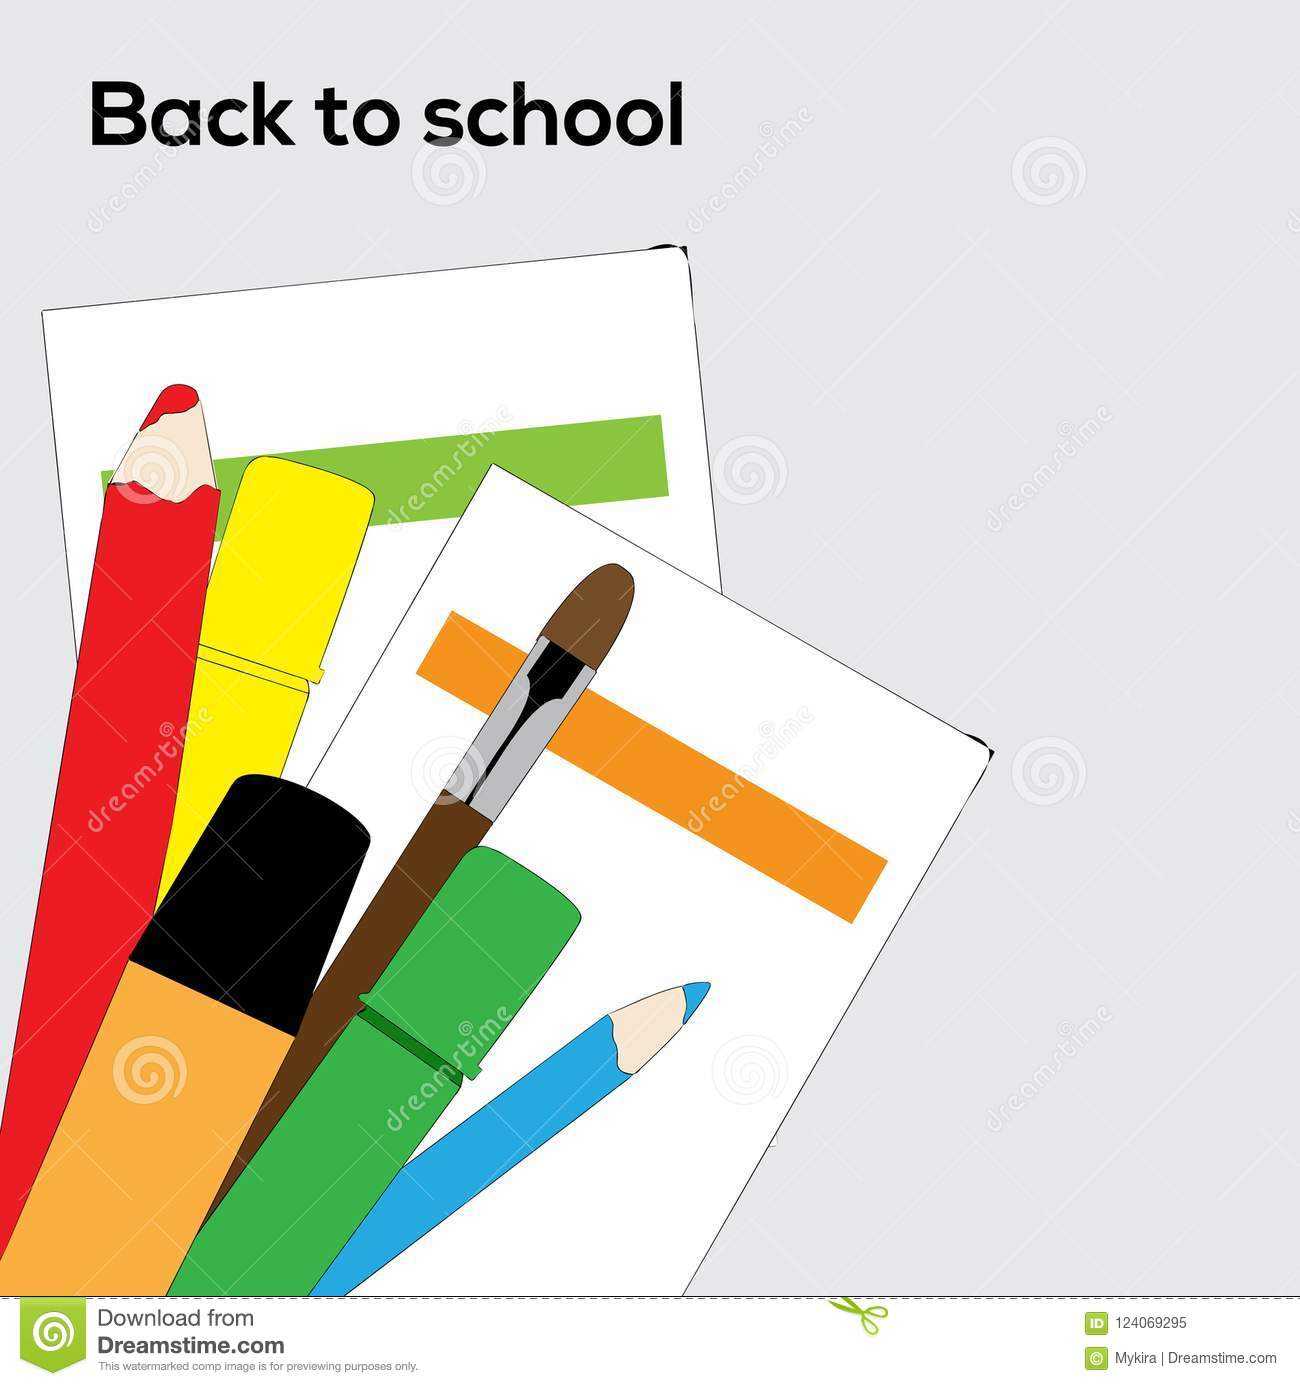 Download Vector School Supplies Pencils, Brush And Markers Stock Vector - Illustration of computer, people: 124069295